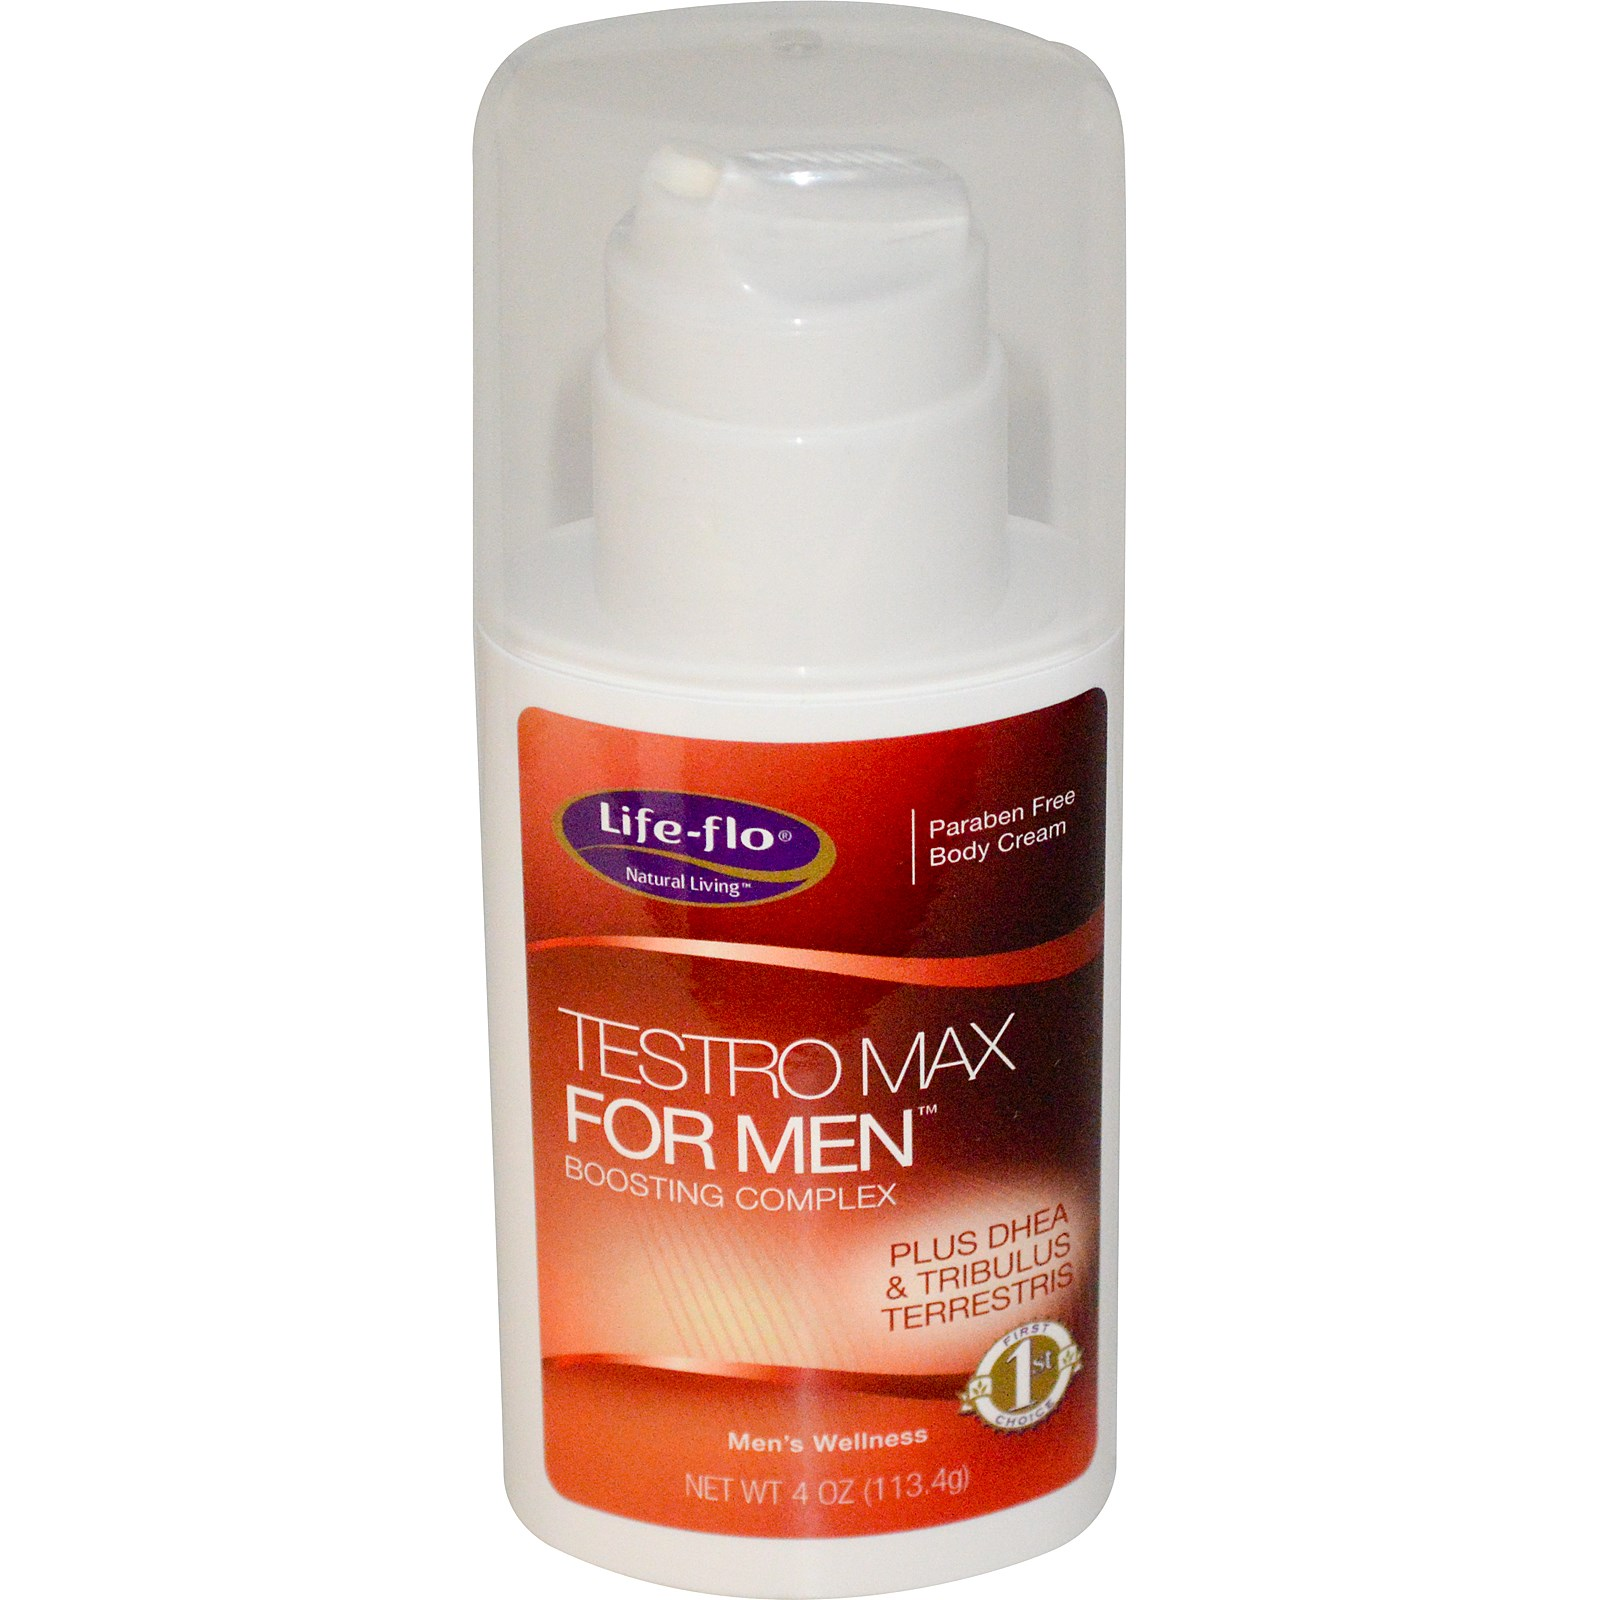 Life-Flo Testro Max for Men - 4 oz.